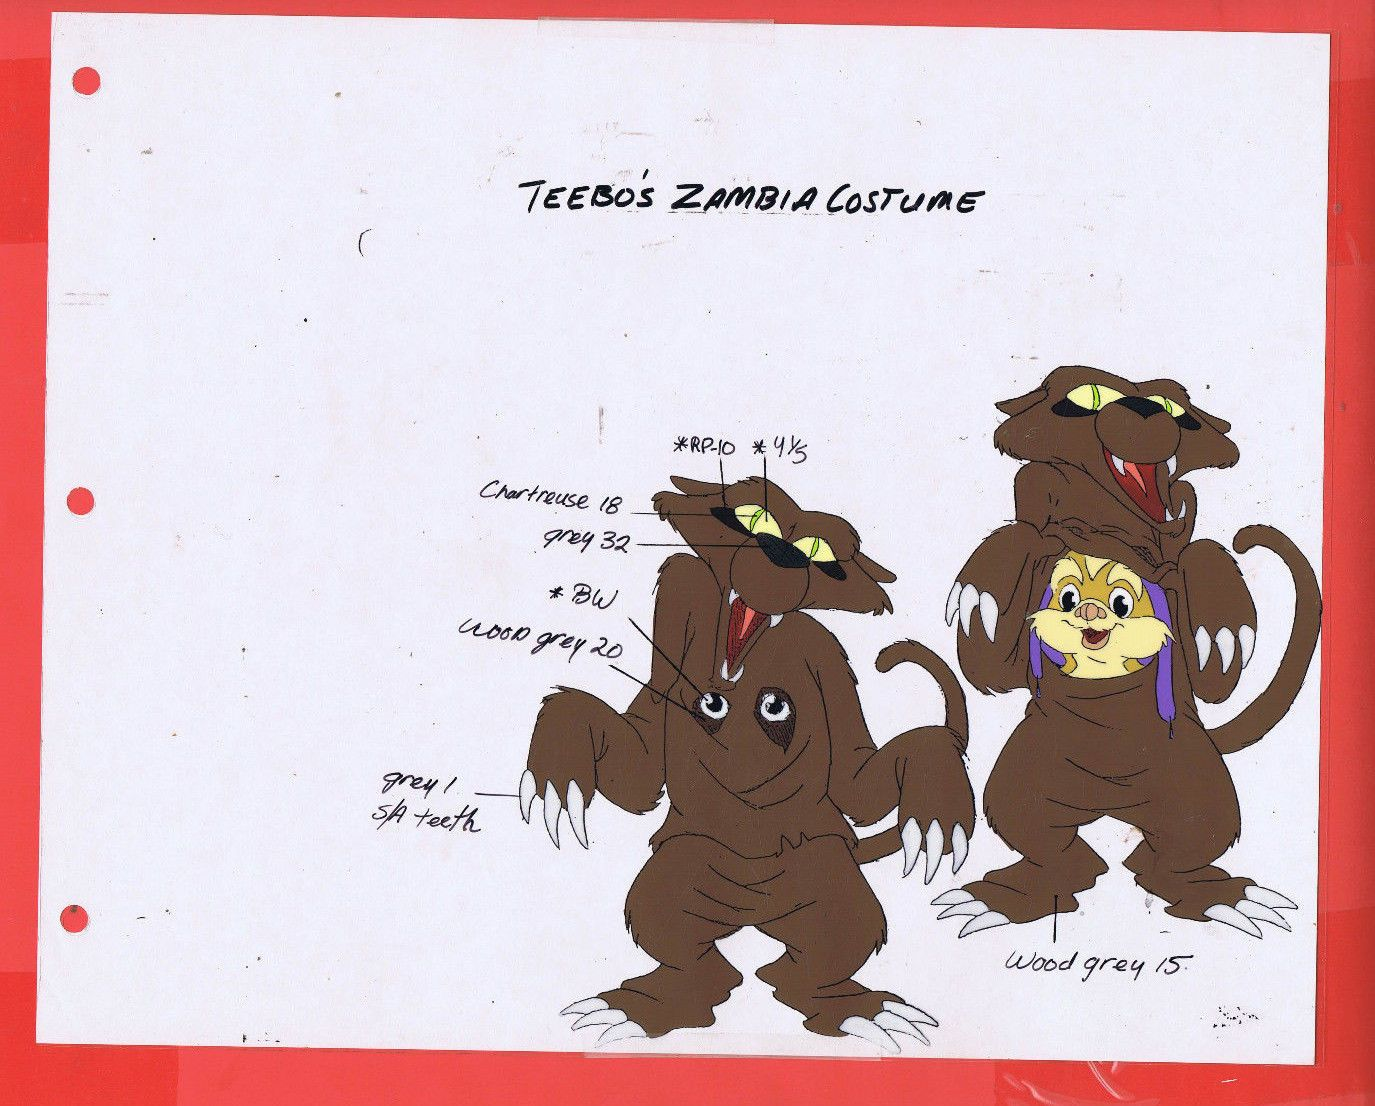 Details about star wars ewoks animation cel drawing